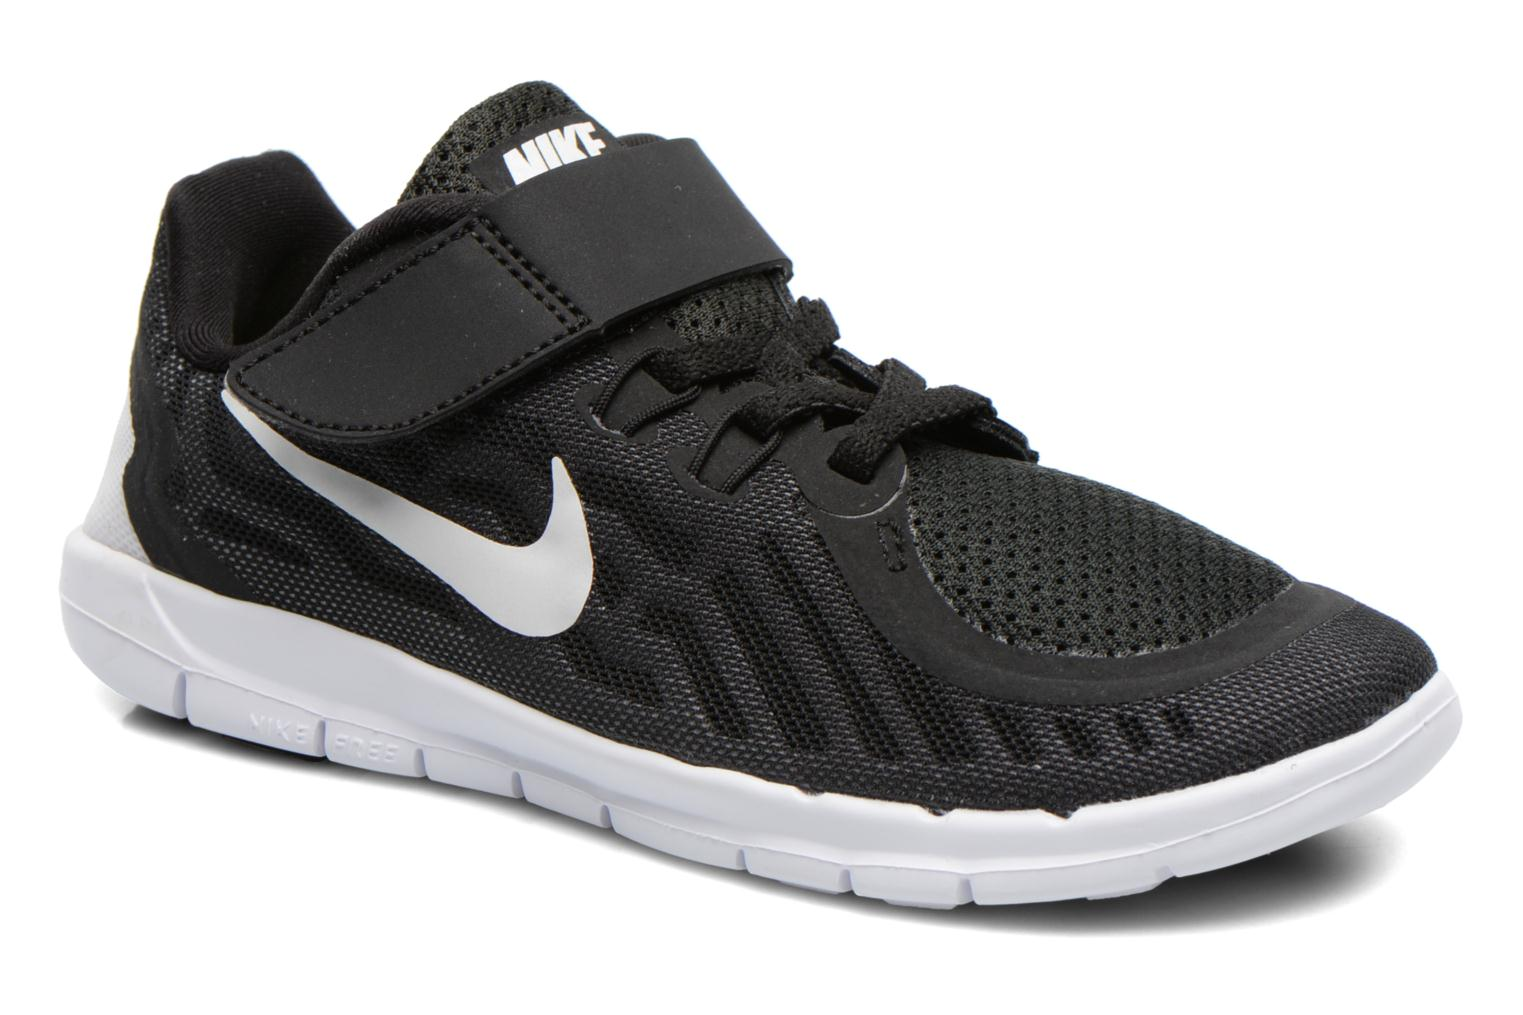 NIKE FREE 5 (PSV) BLACK/WHITE-DARK GREY-CL GREY